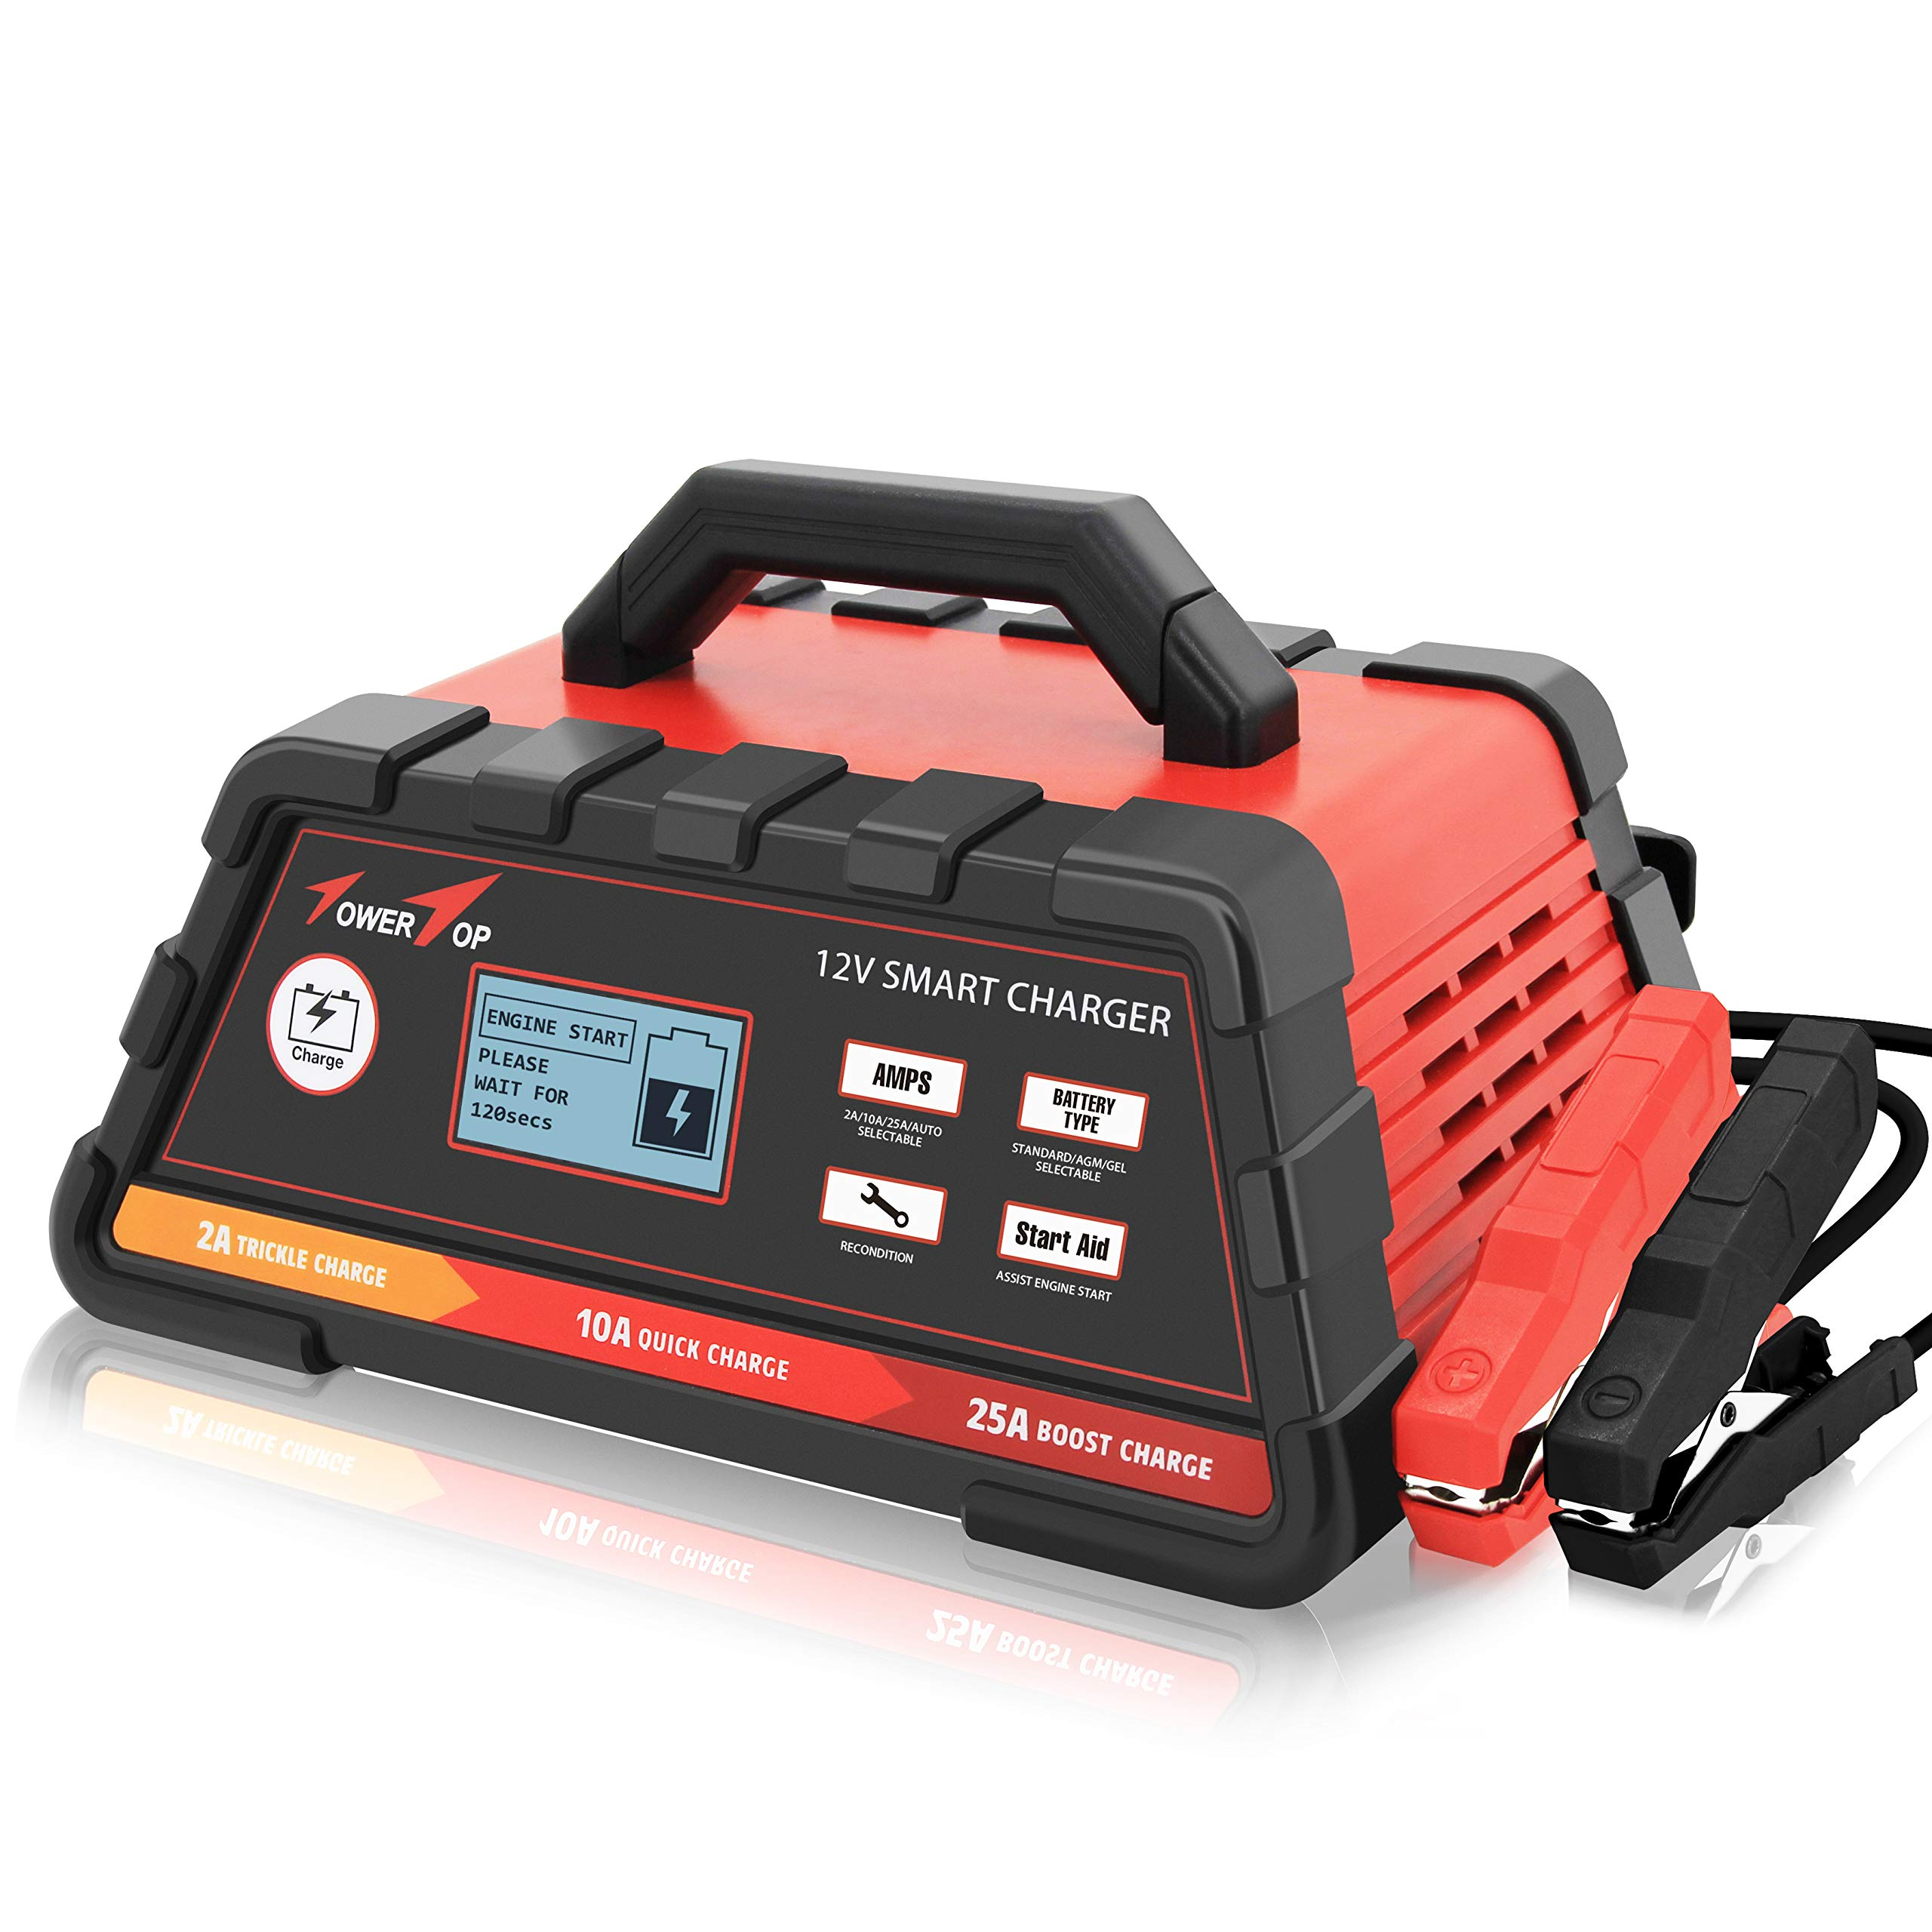 2/10/25A 12V Smart Battery Charger/Maintainer Fully Automatic with Engine Start, Cable Clamps by TowerTop